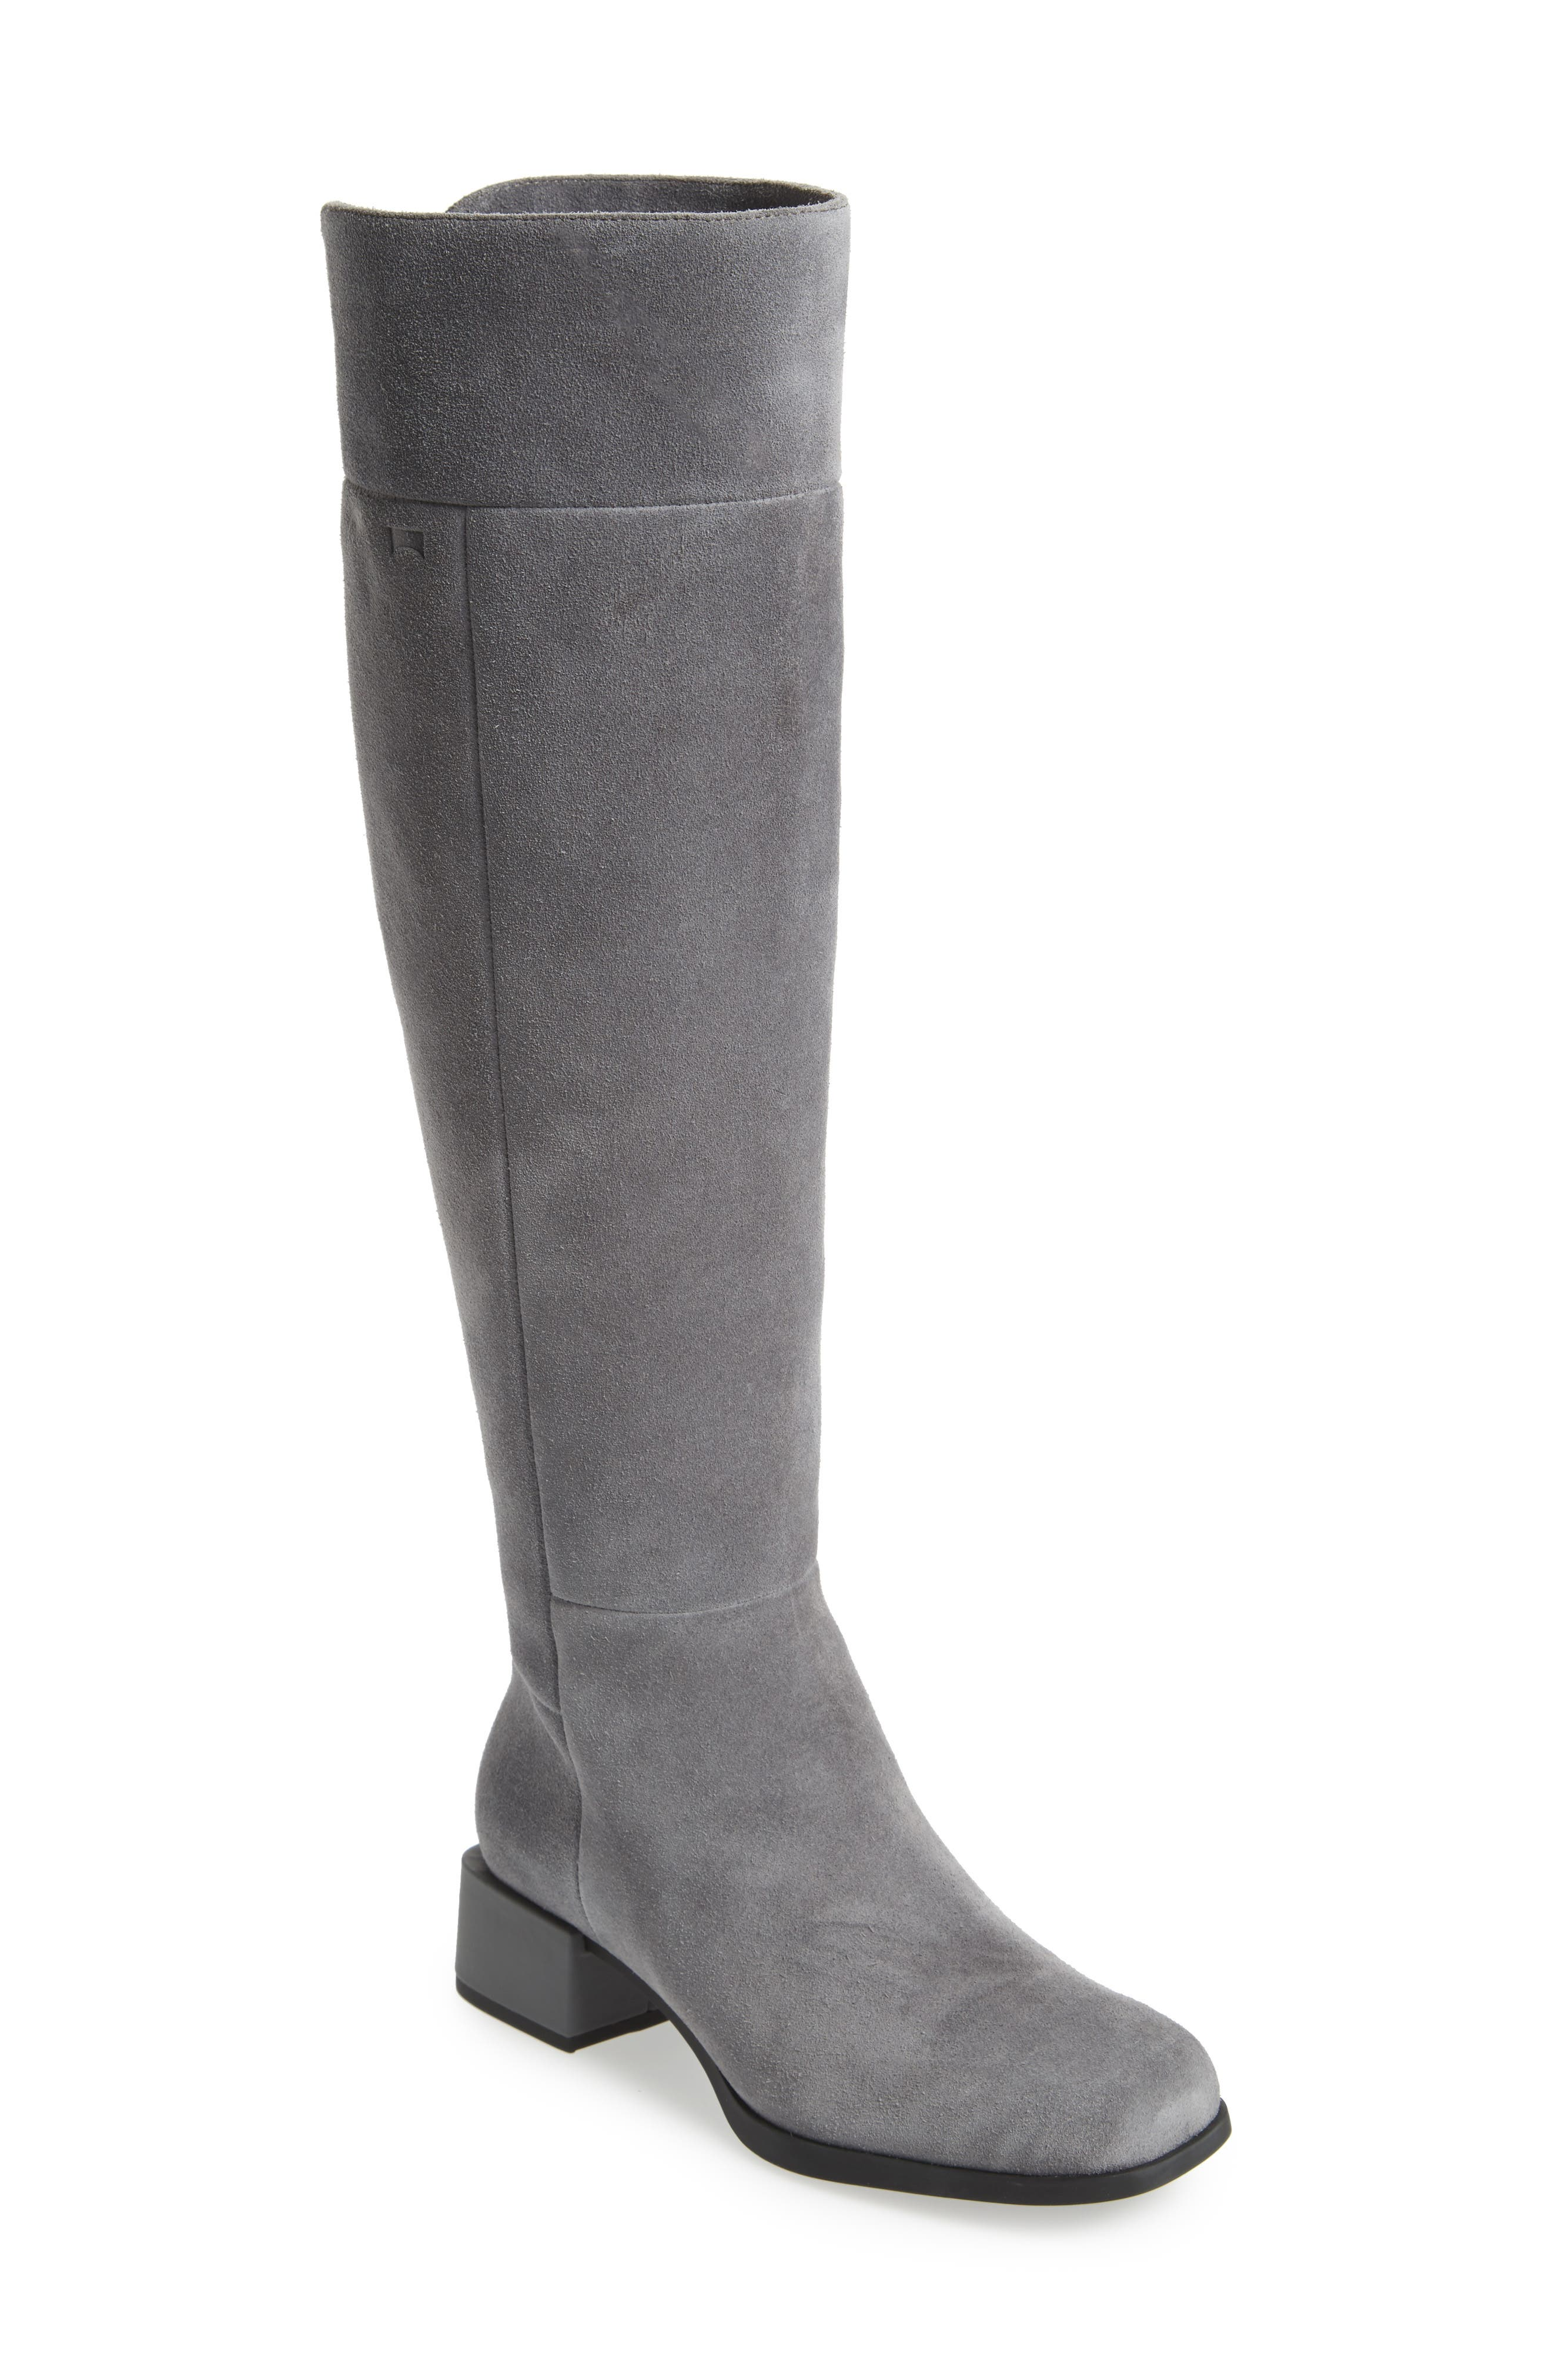 Kobo Knee High Boot,                             Main thumbnail 1, color,                             Grey Leather